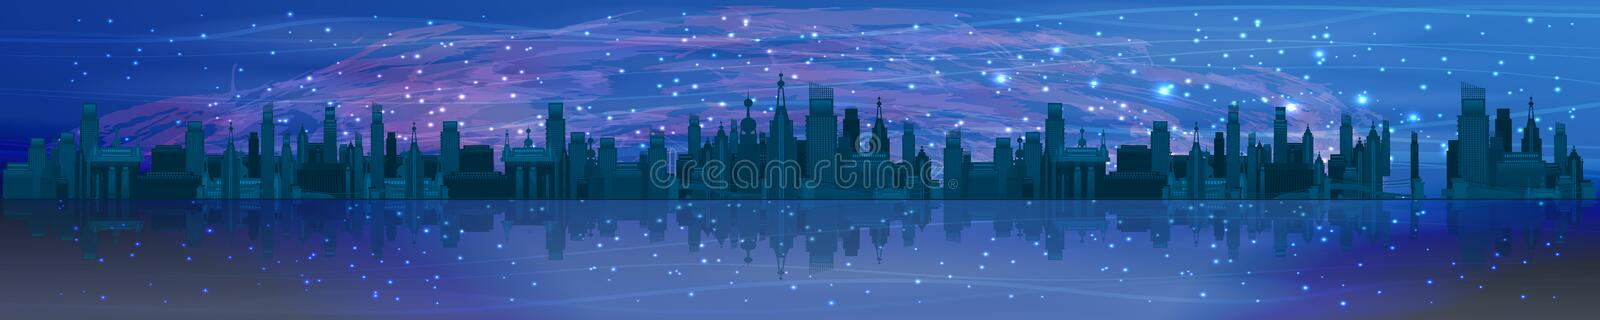 Space panorama horizontal orientation. The universe and the night city. skyscrapers and streets against the sky and water royalty free stock photography